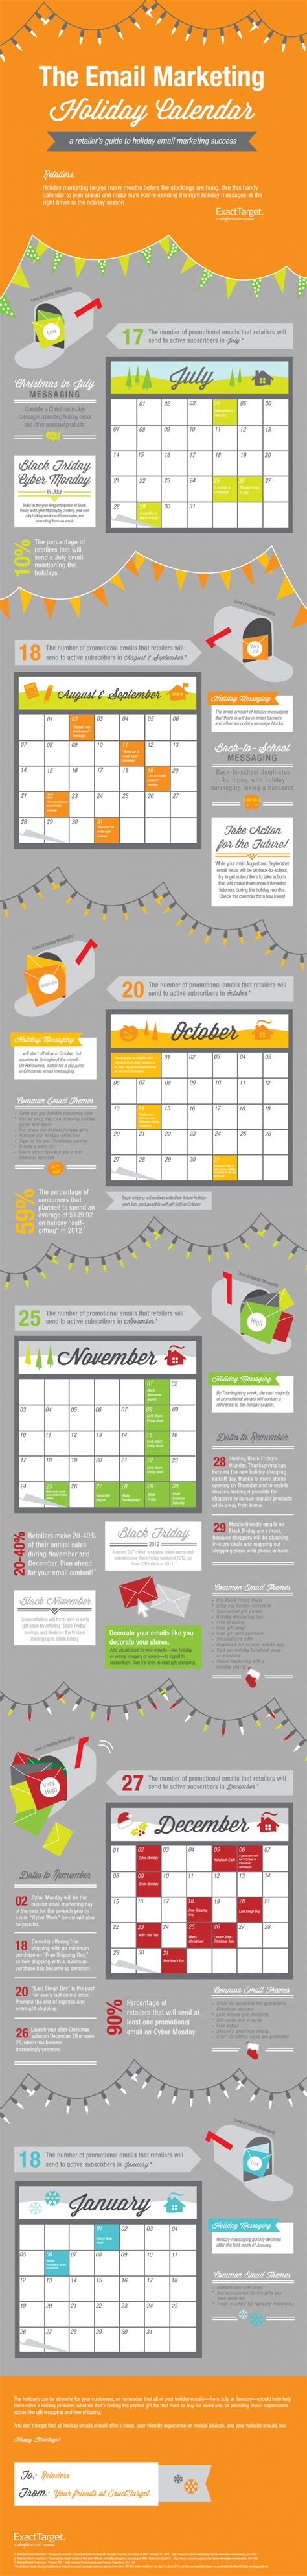 The Email Marketing Holiday Calendar [infographic]  Happy. Commodity Brokerage Charges Www Speedtest Nt. Premier Care In Bathing Cost. Target Market College Students. Best Web Hosts For Small Business. Vet Tech Programs In Florida Carne De Neon. Universities In Savannah Ga What Is Revision. Credit Cards With Balance Transfer Offers. Pfizer Medical Education Grants